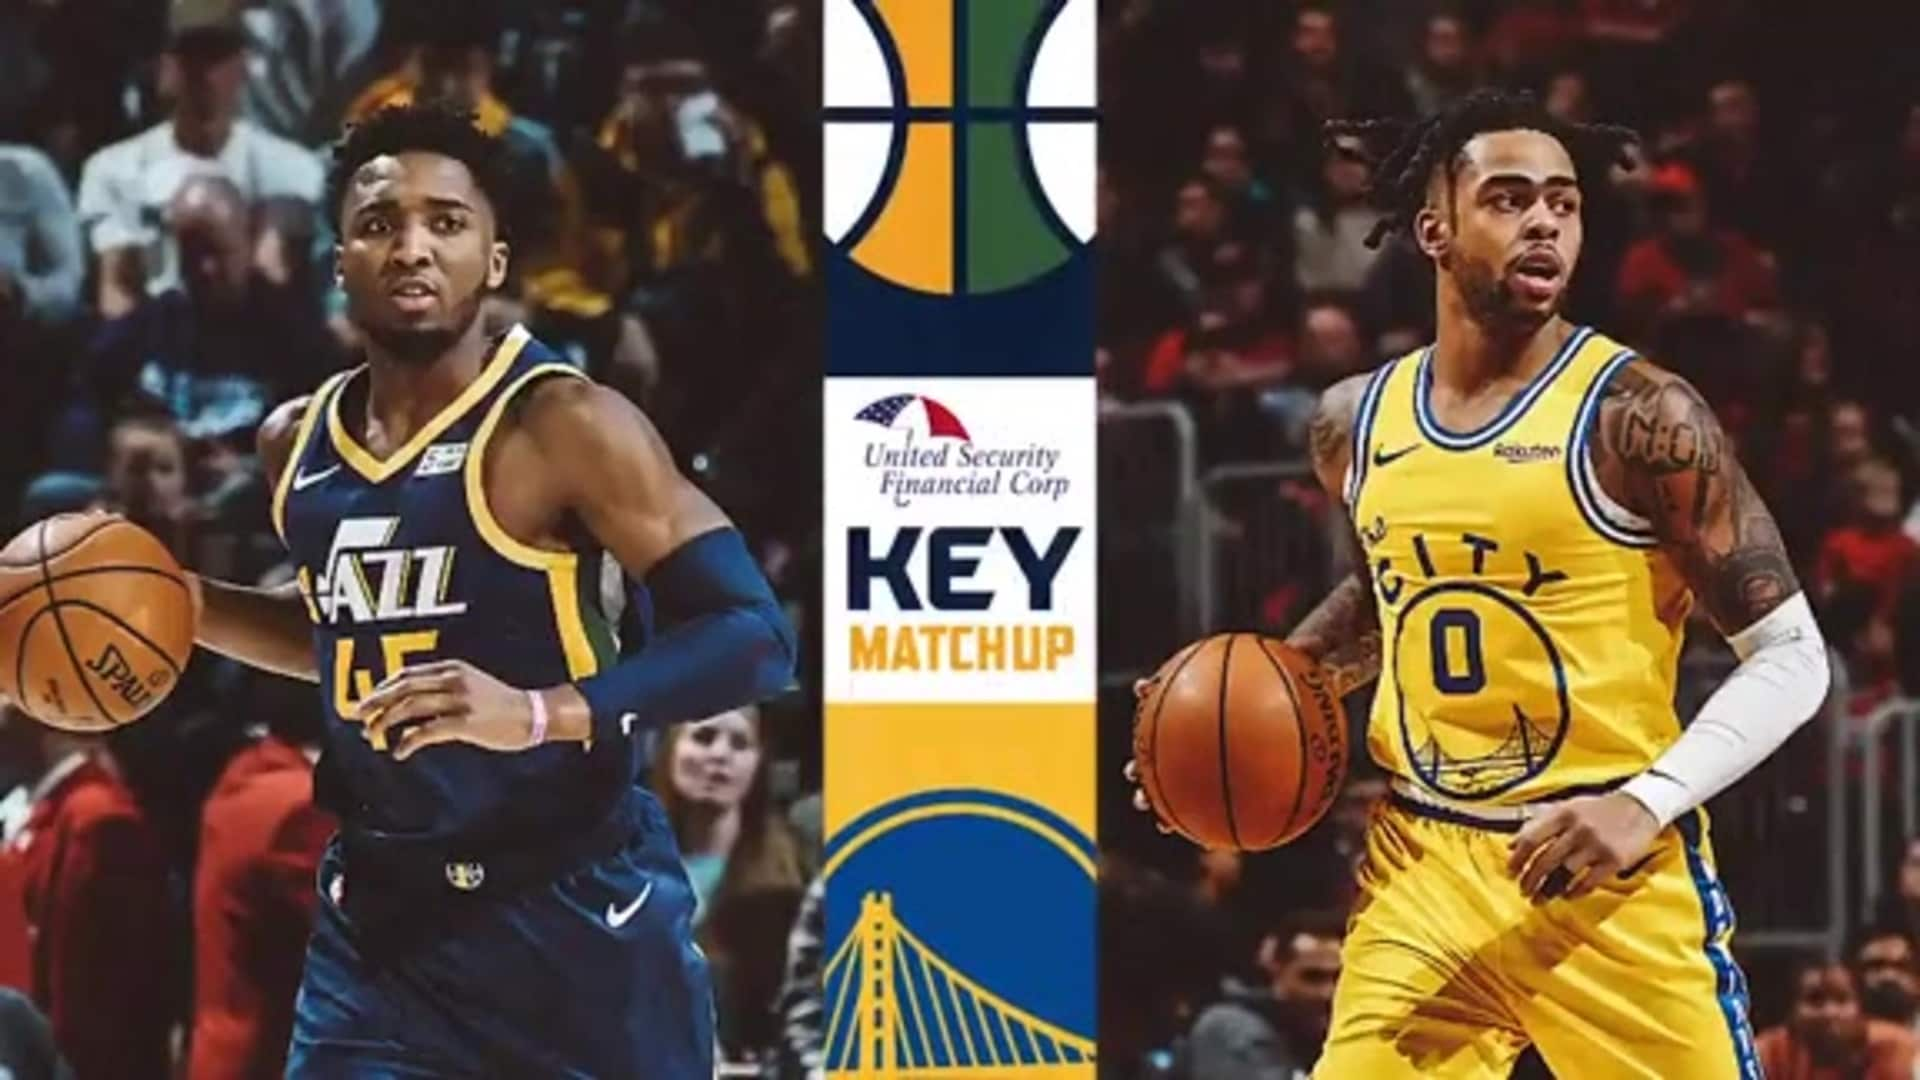 Key Matchup: Donovan Mitchell vs. D'Angelo Russell